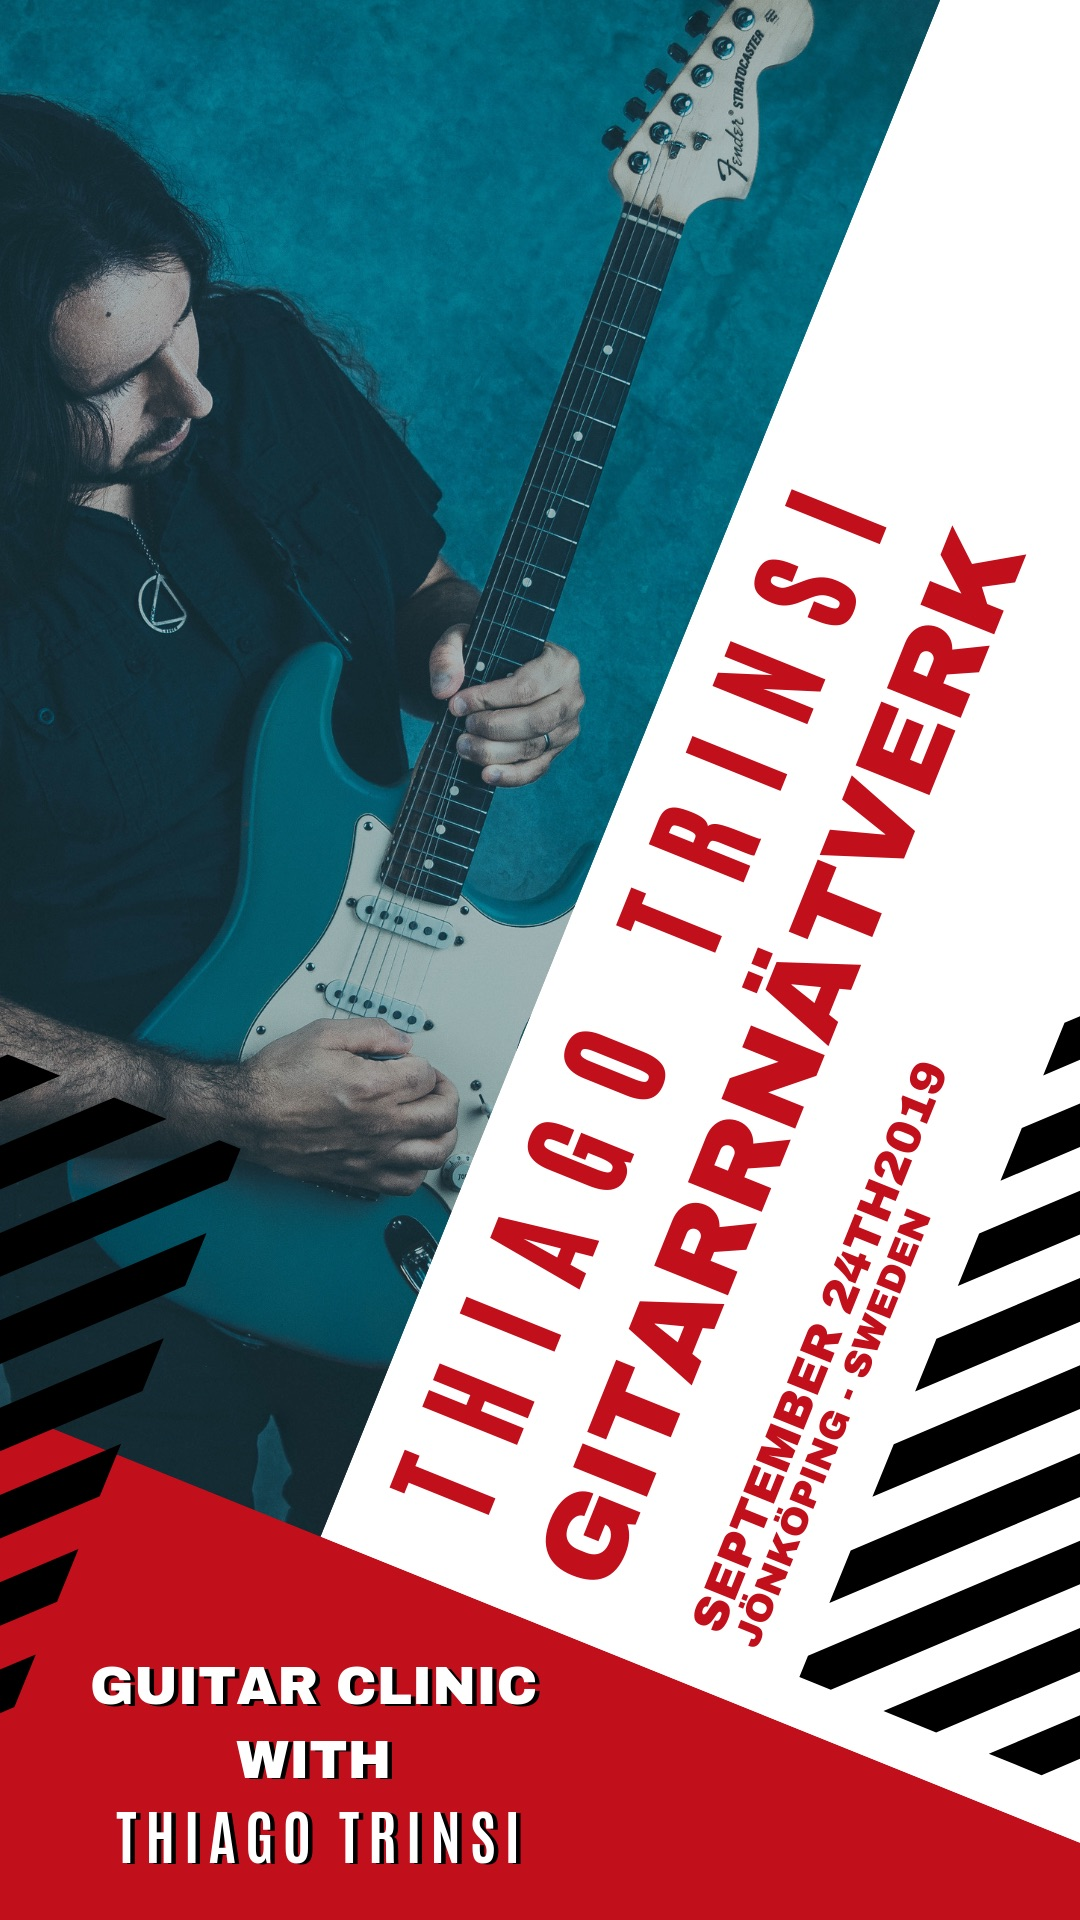 Guitar Clinic With Thiago Trinsi in Jönköping - Sweden - September 24th